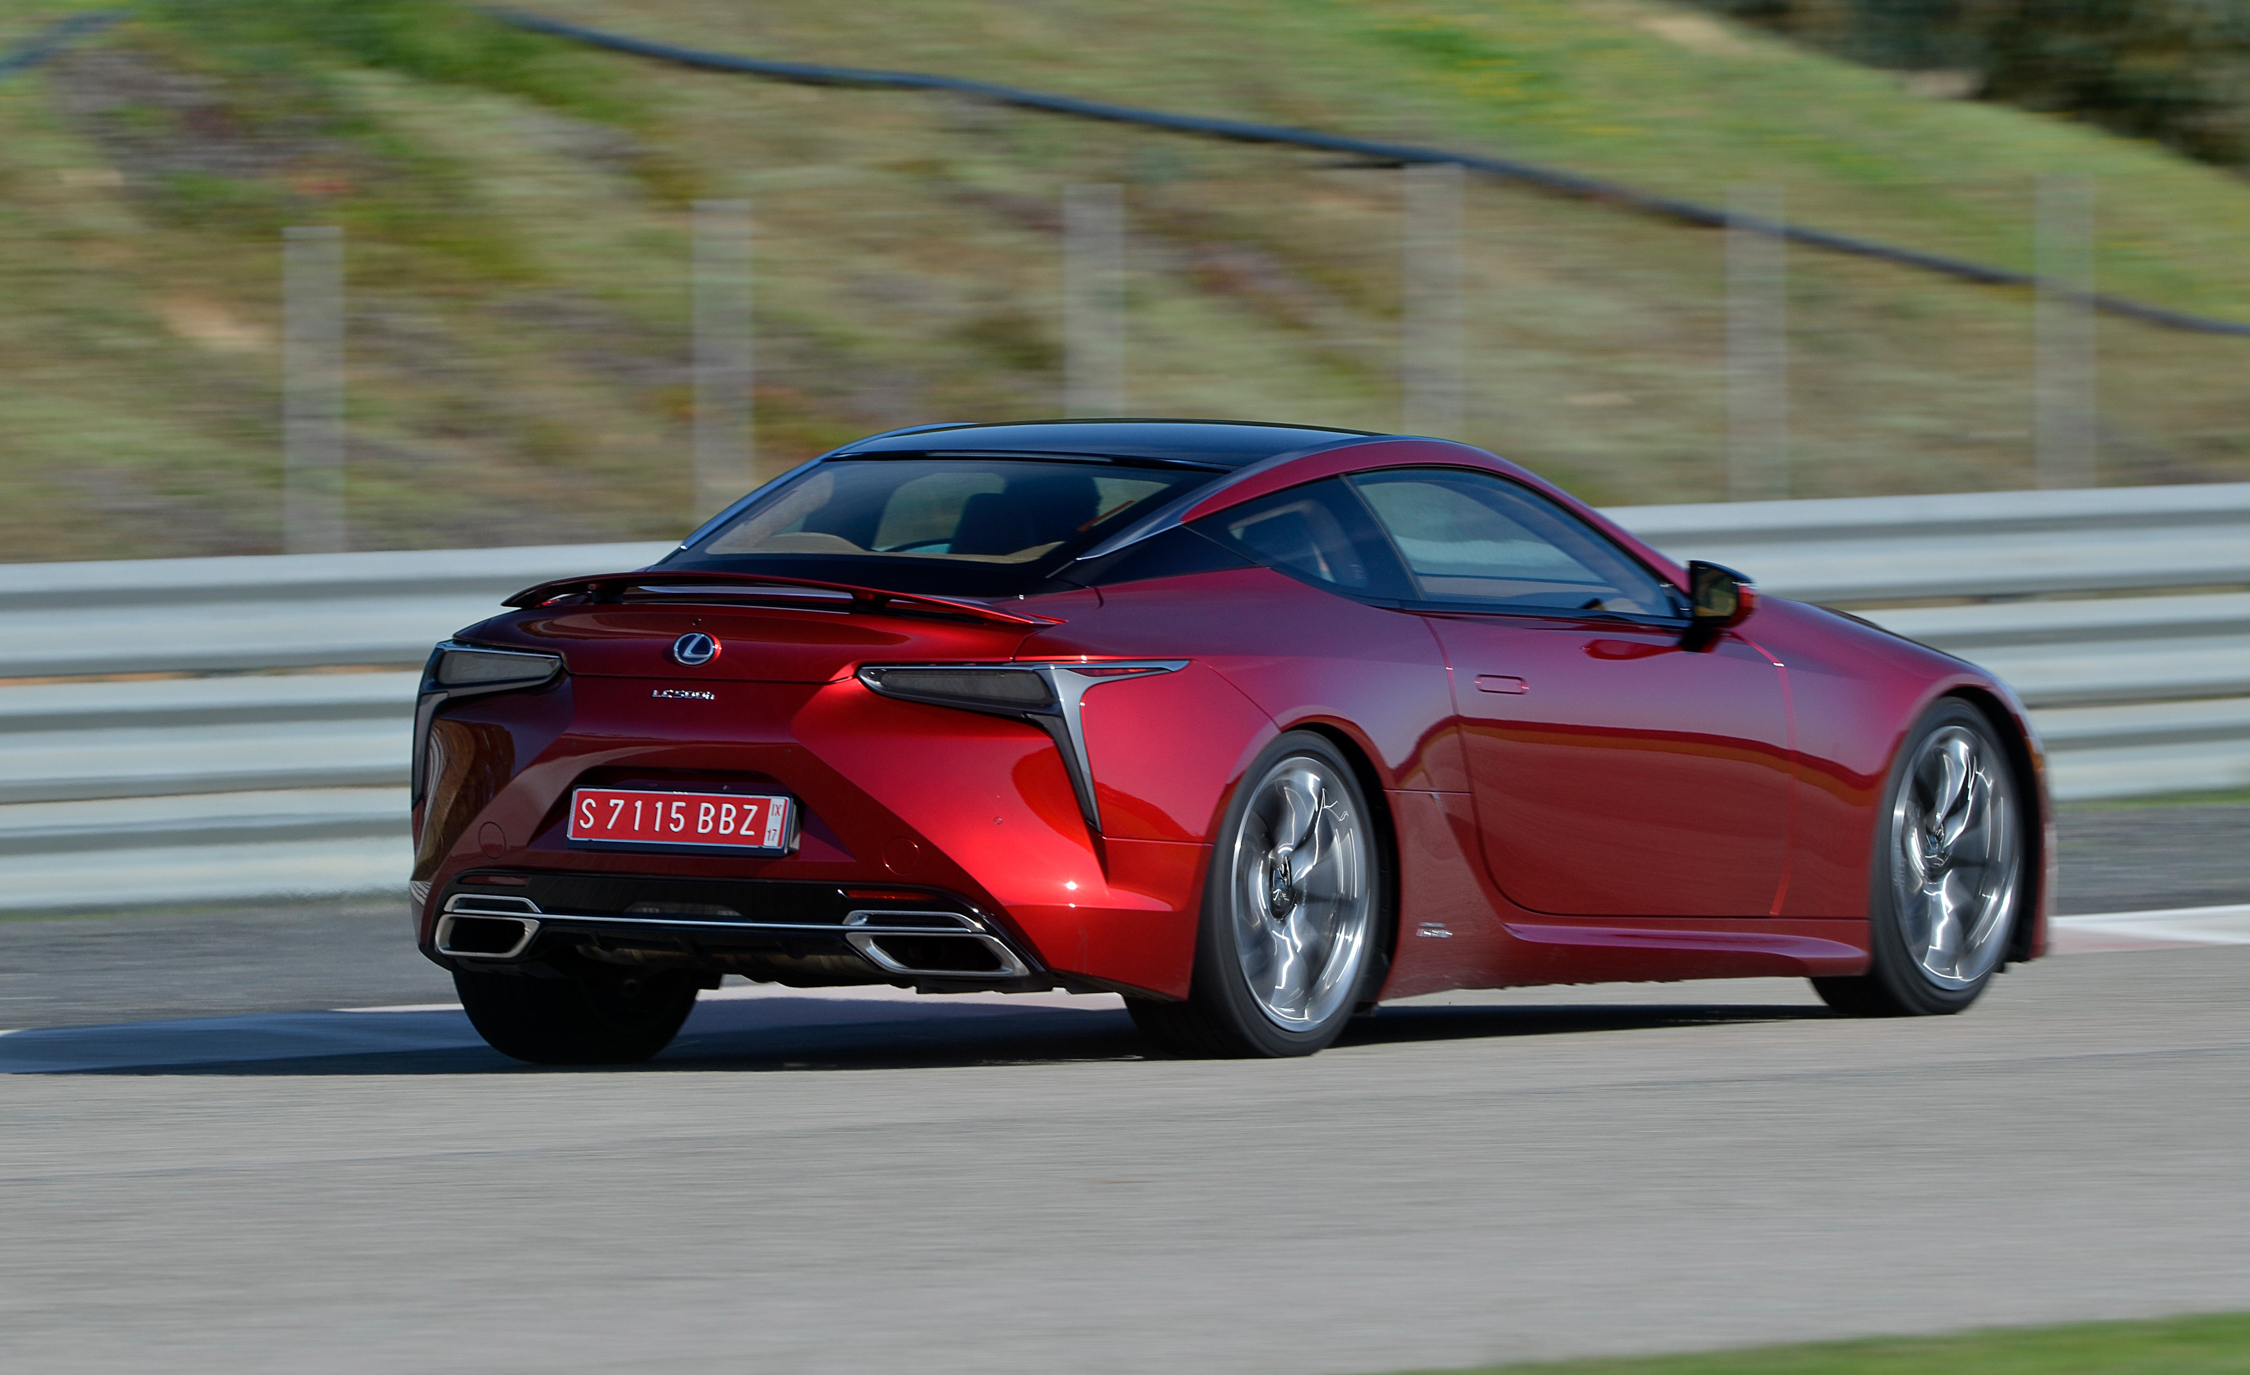 2018 Lexus Lc 500 Red Test Drive Side And Rear View (Photo 27 of 84)